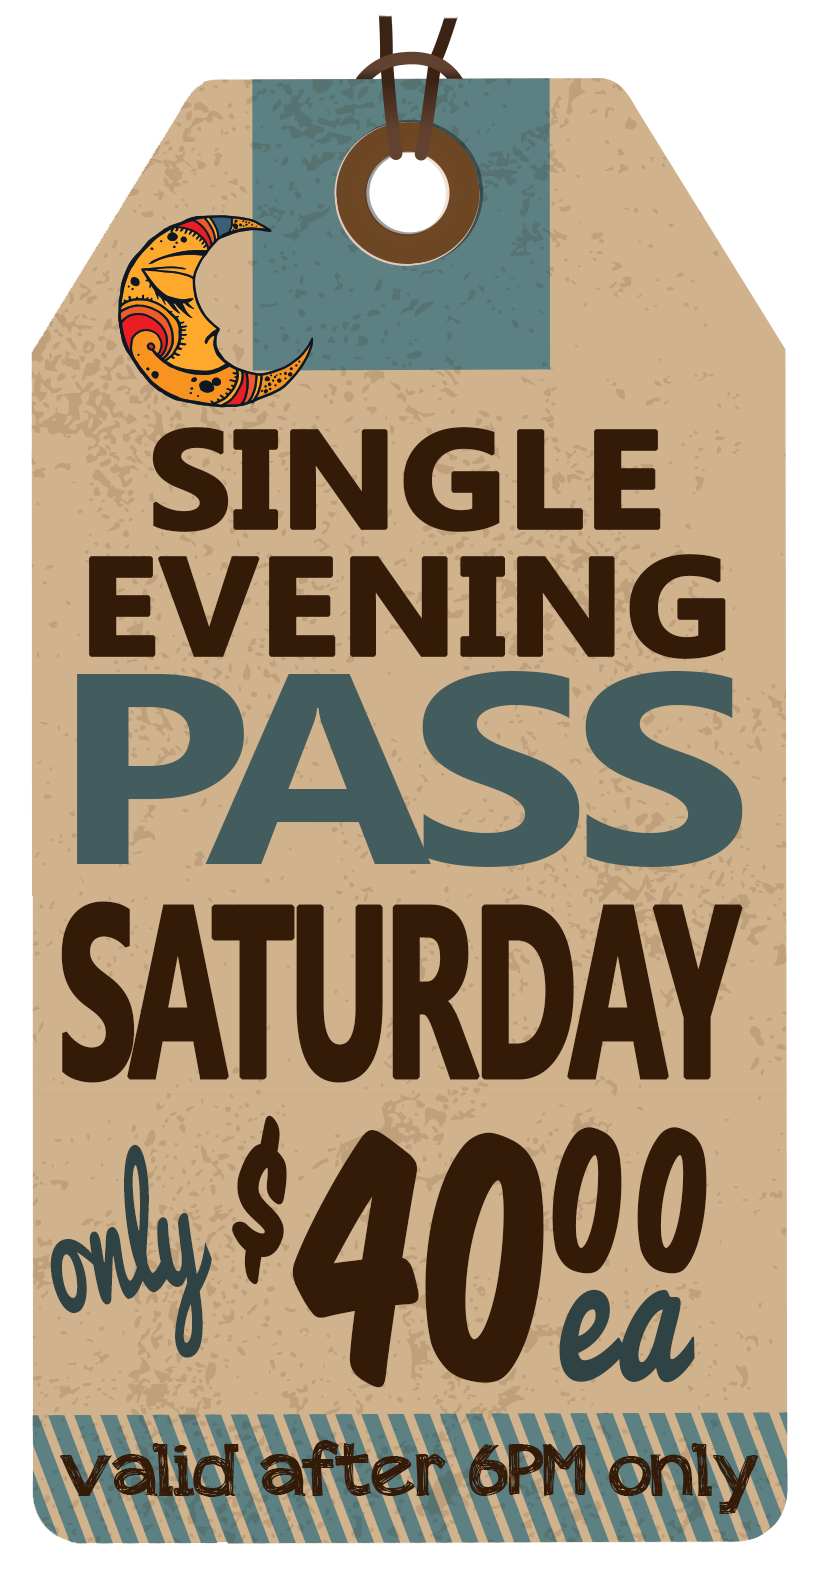 EVENING Saturday Pass - $40.00